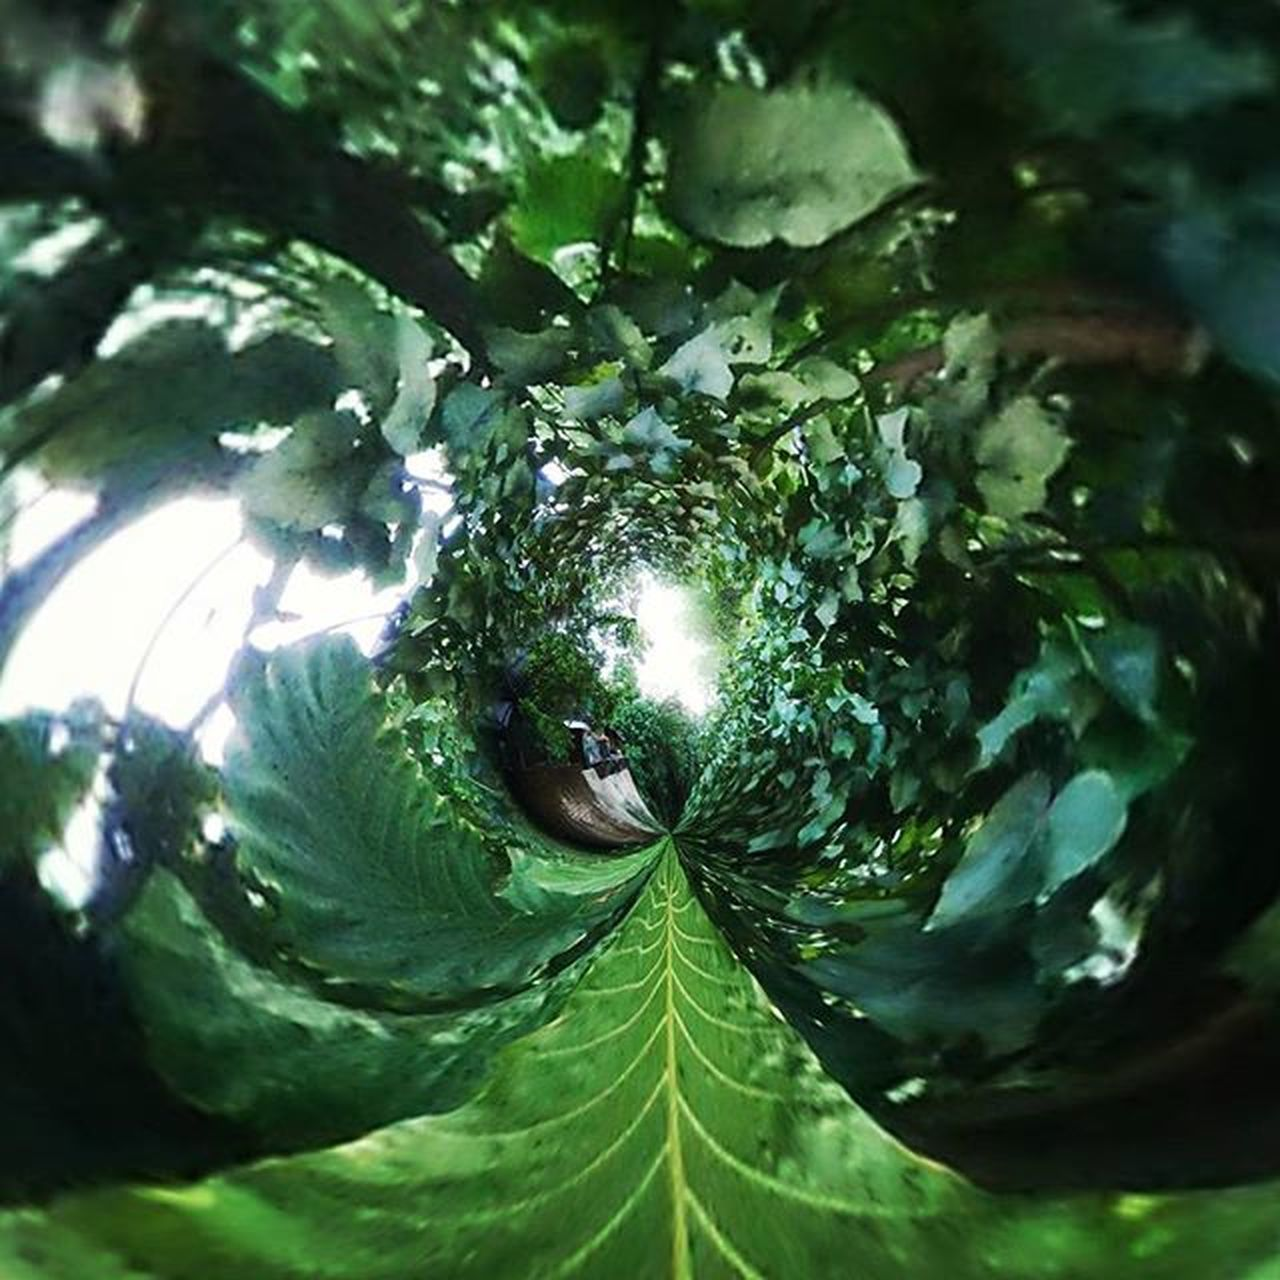 Way of Jungle. Jungle Tinyplanet Discharged Aroundtheworld Photographyoftheday Day Sun Thechoop Indonesian Culture Green Race Champion